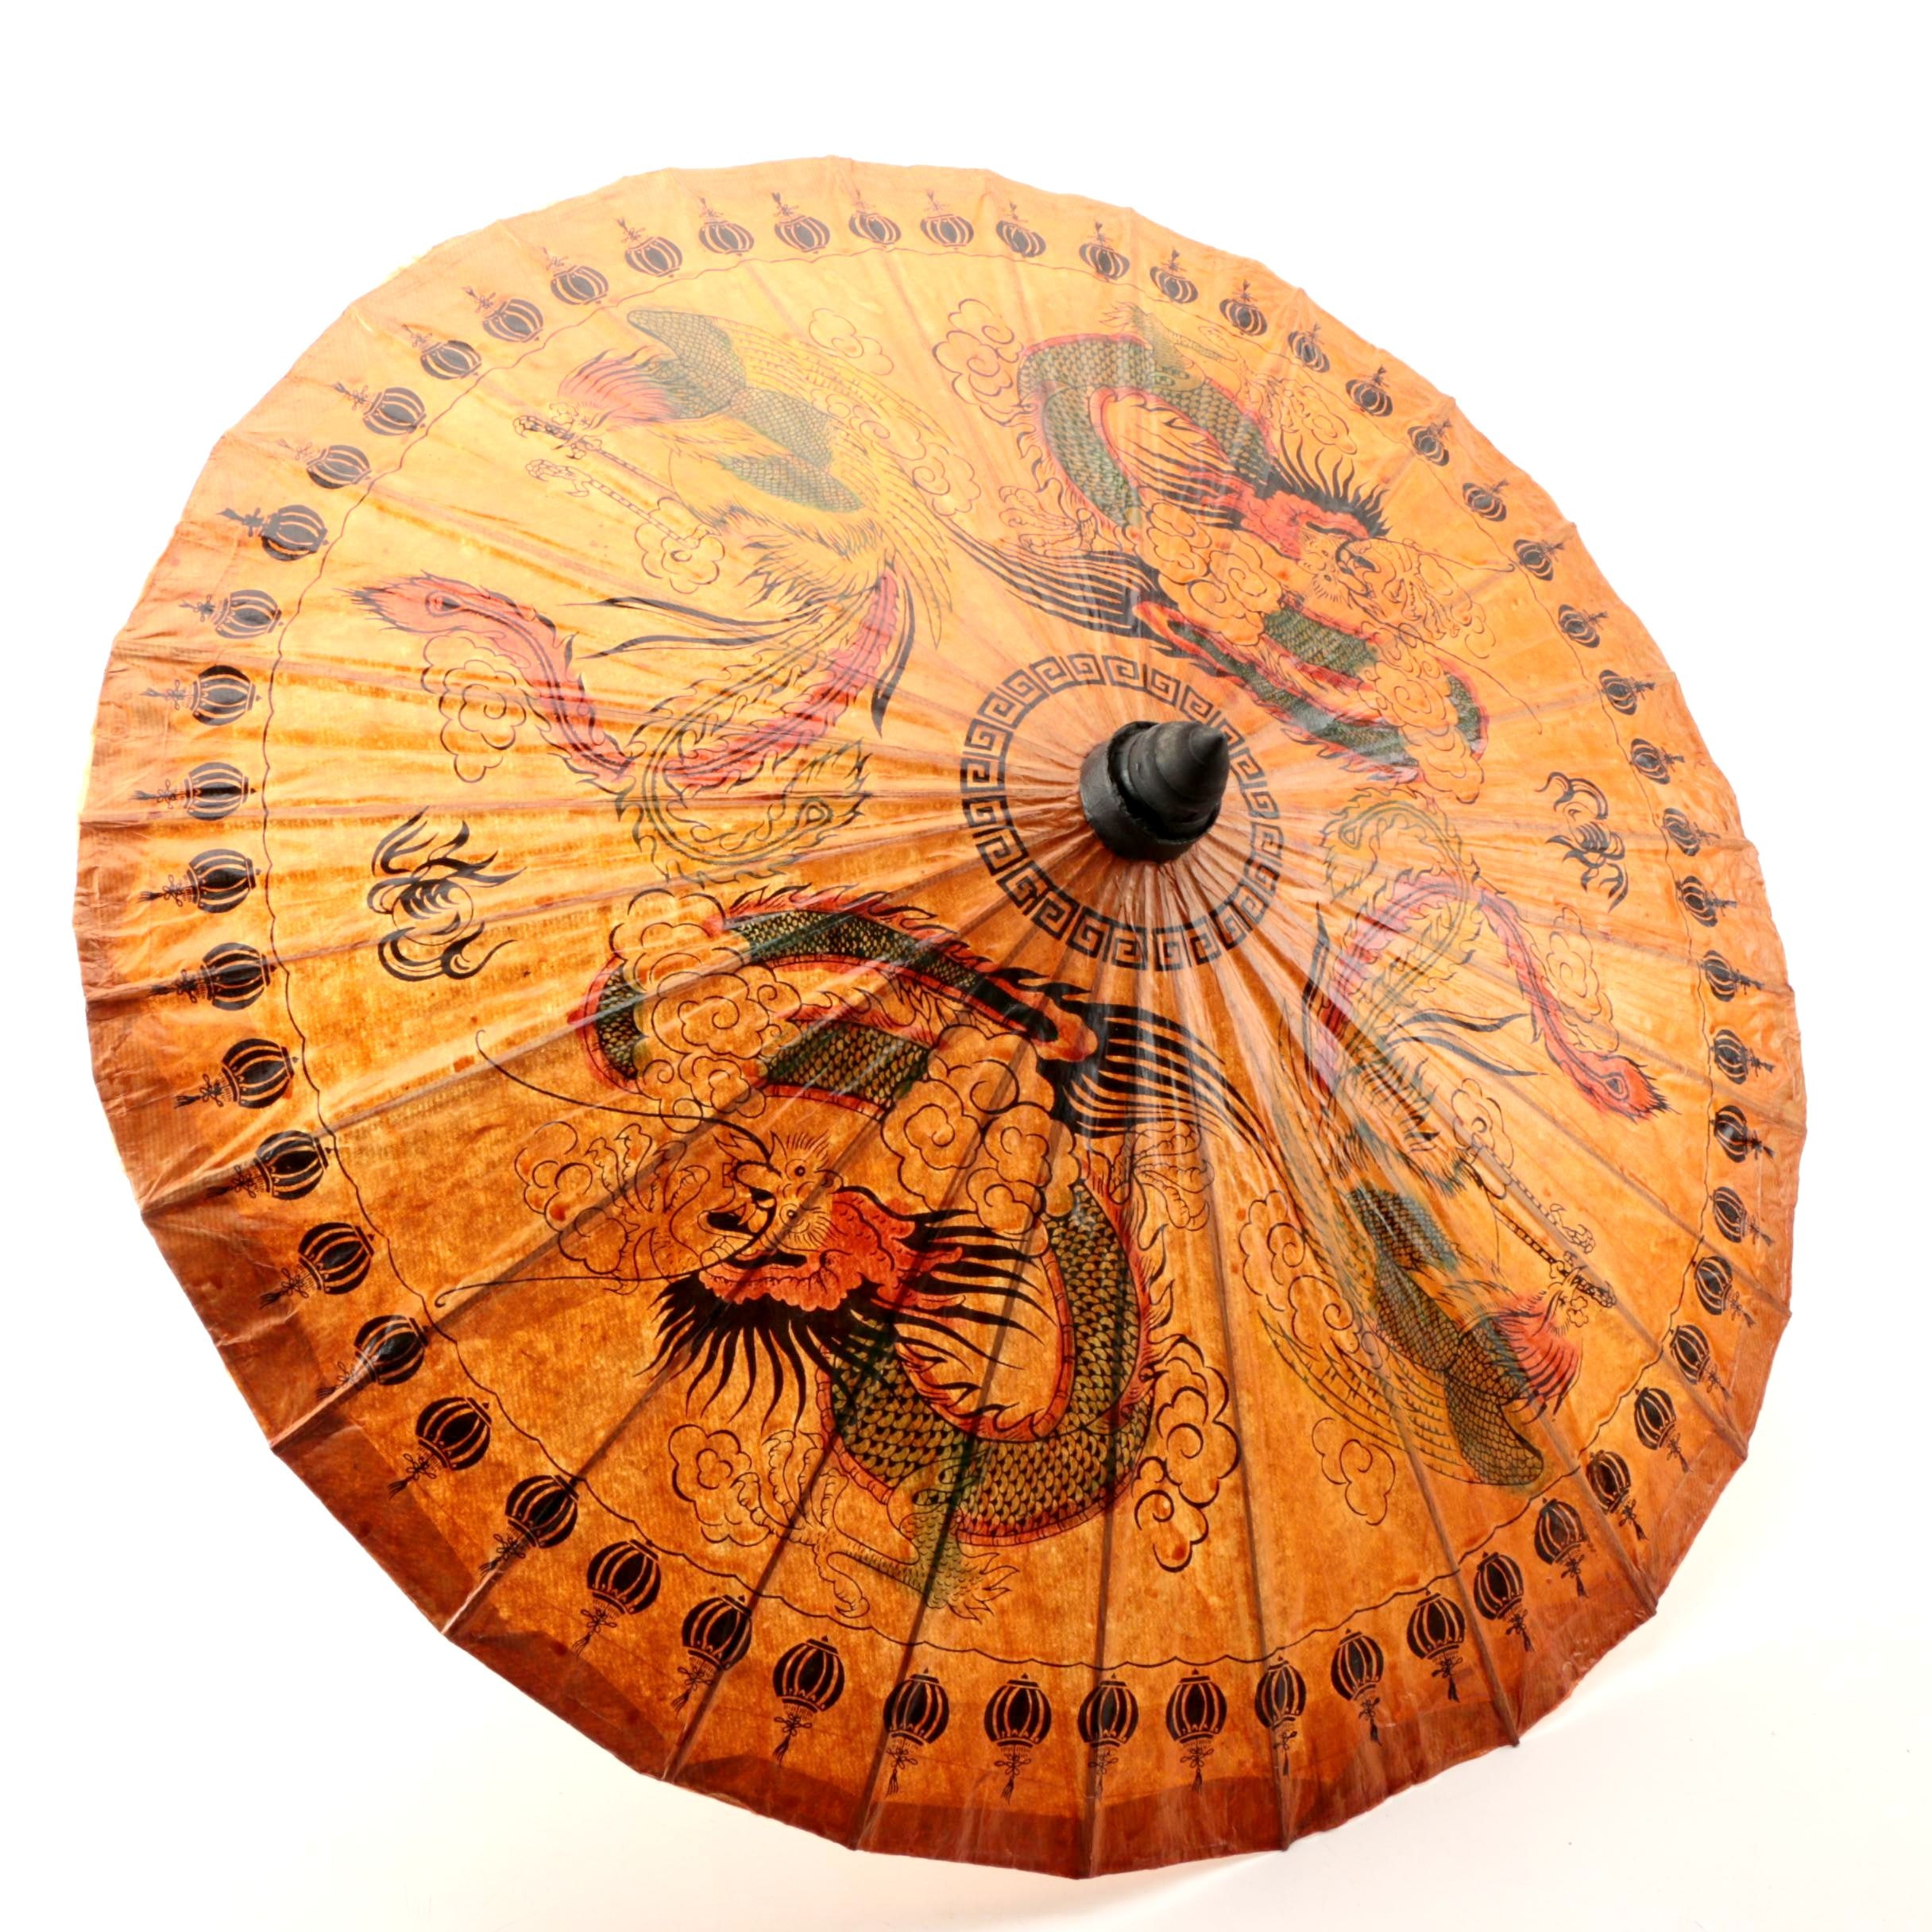 Vintage Asian Hand-Decorated Paper Parasol with Wood Depicting Dragon